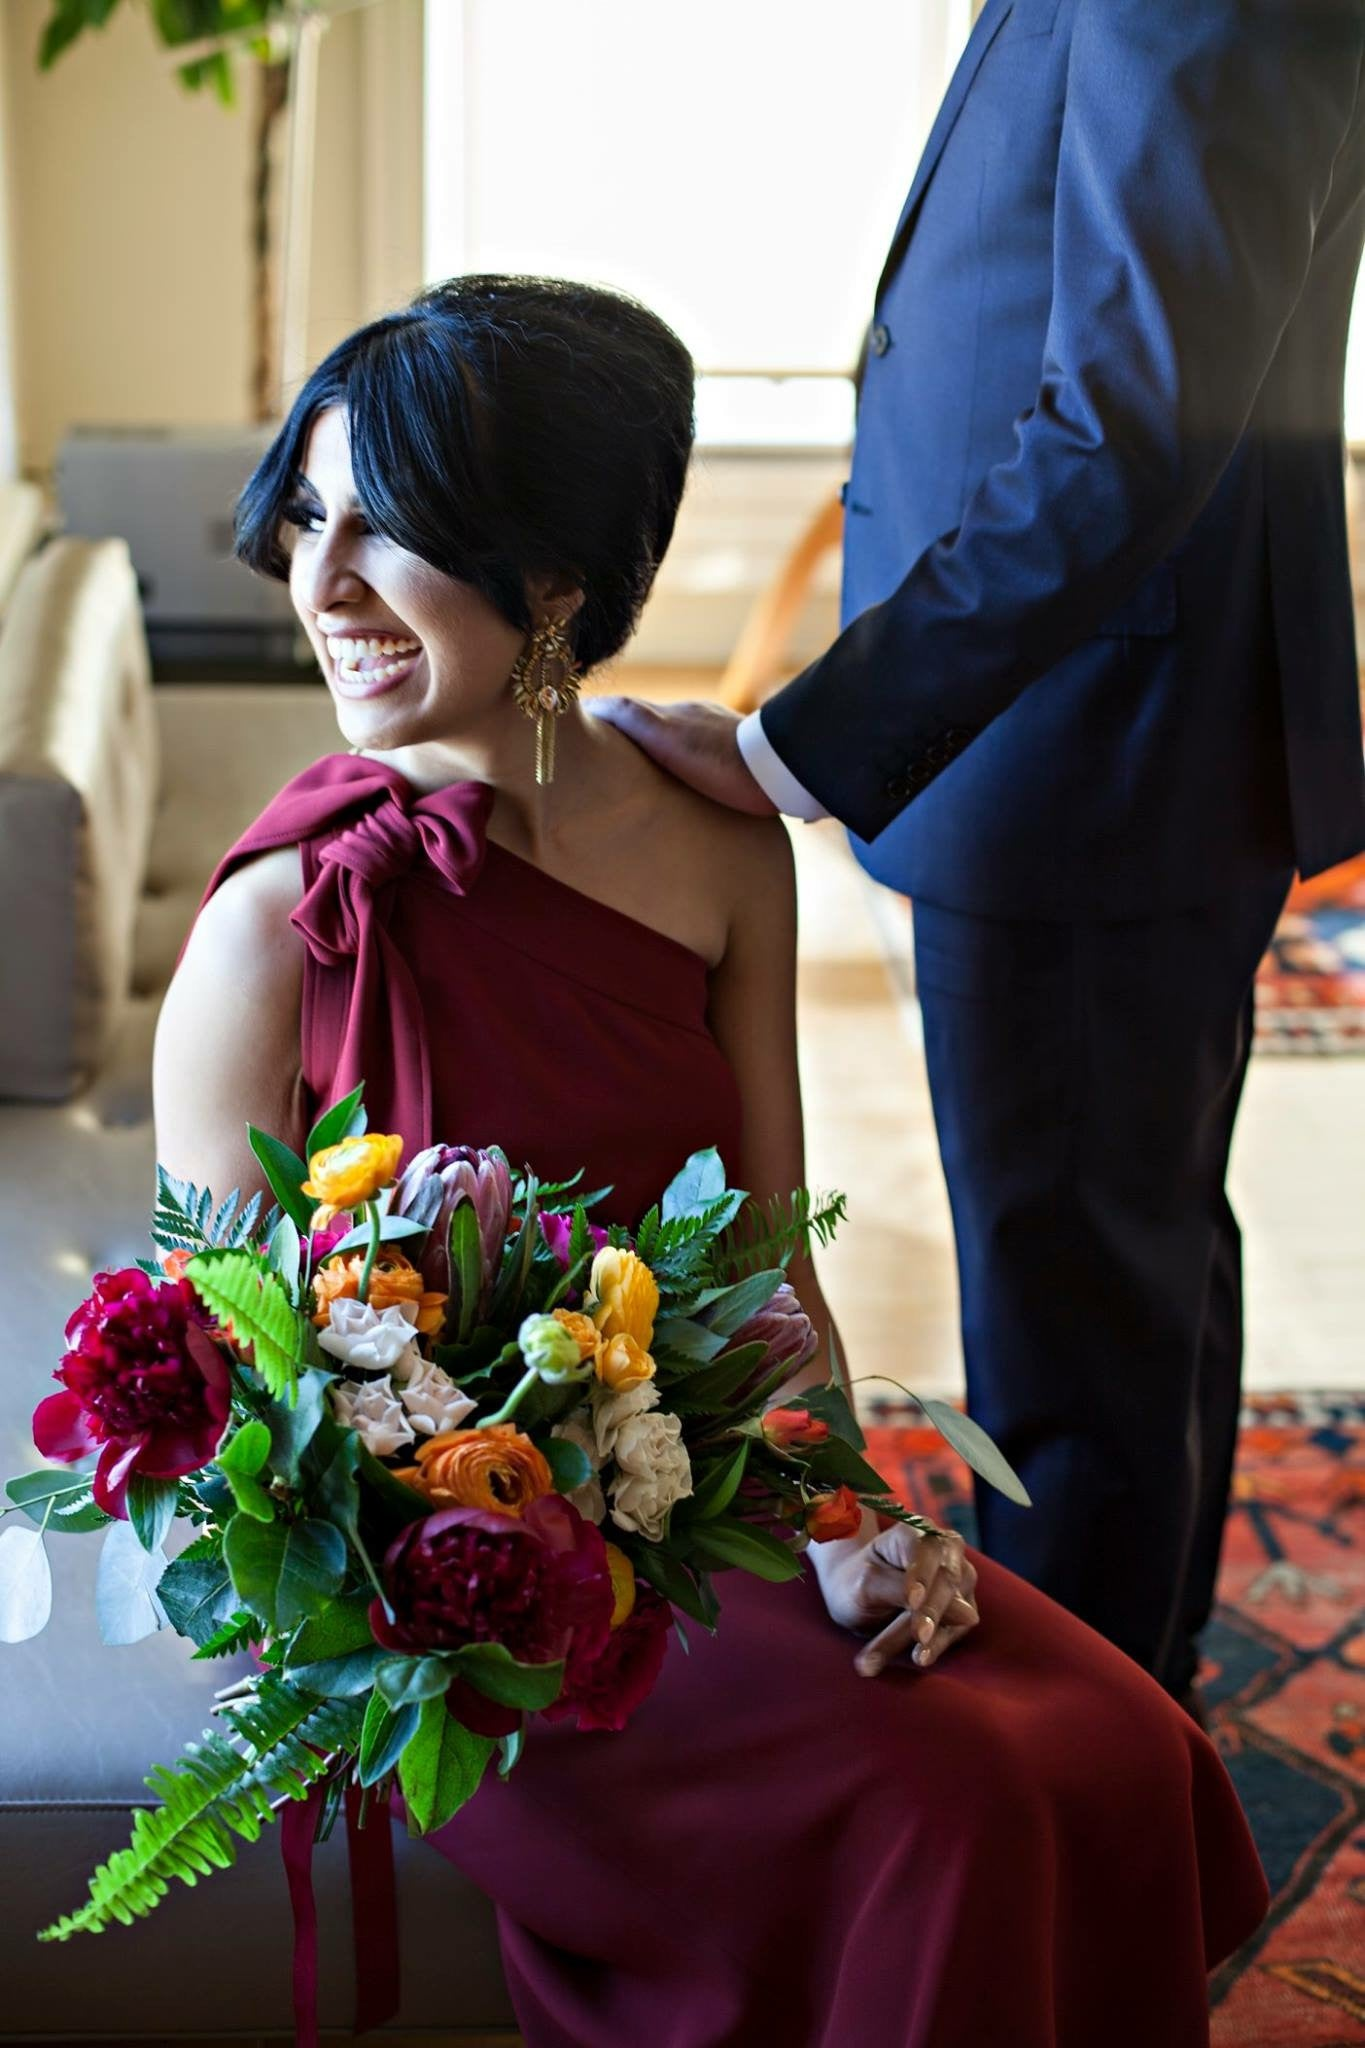 Dockflower Photography - Riya and Wes Wedding